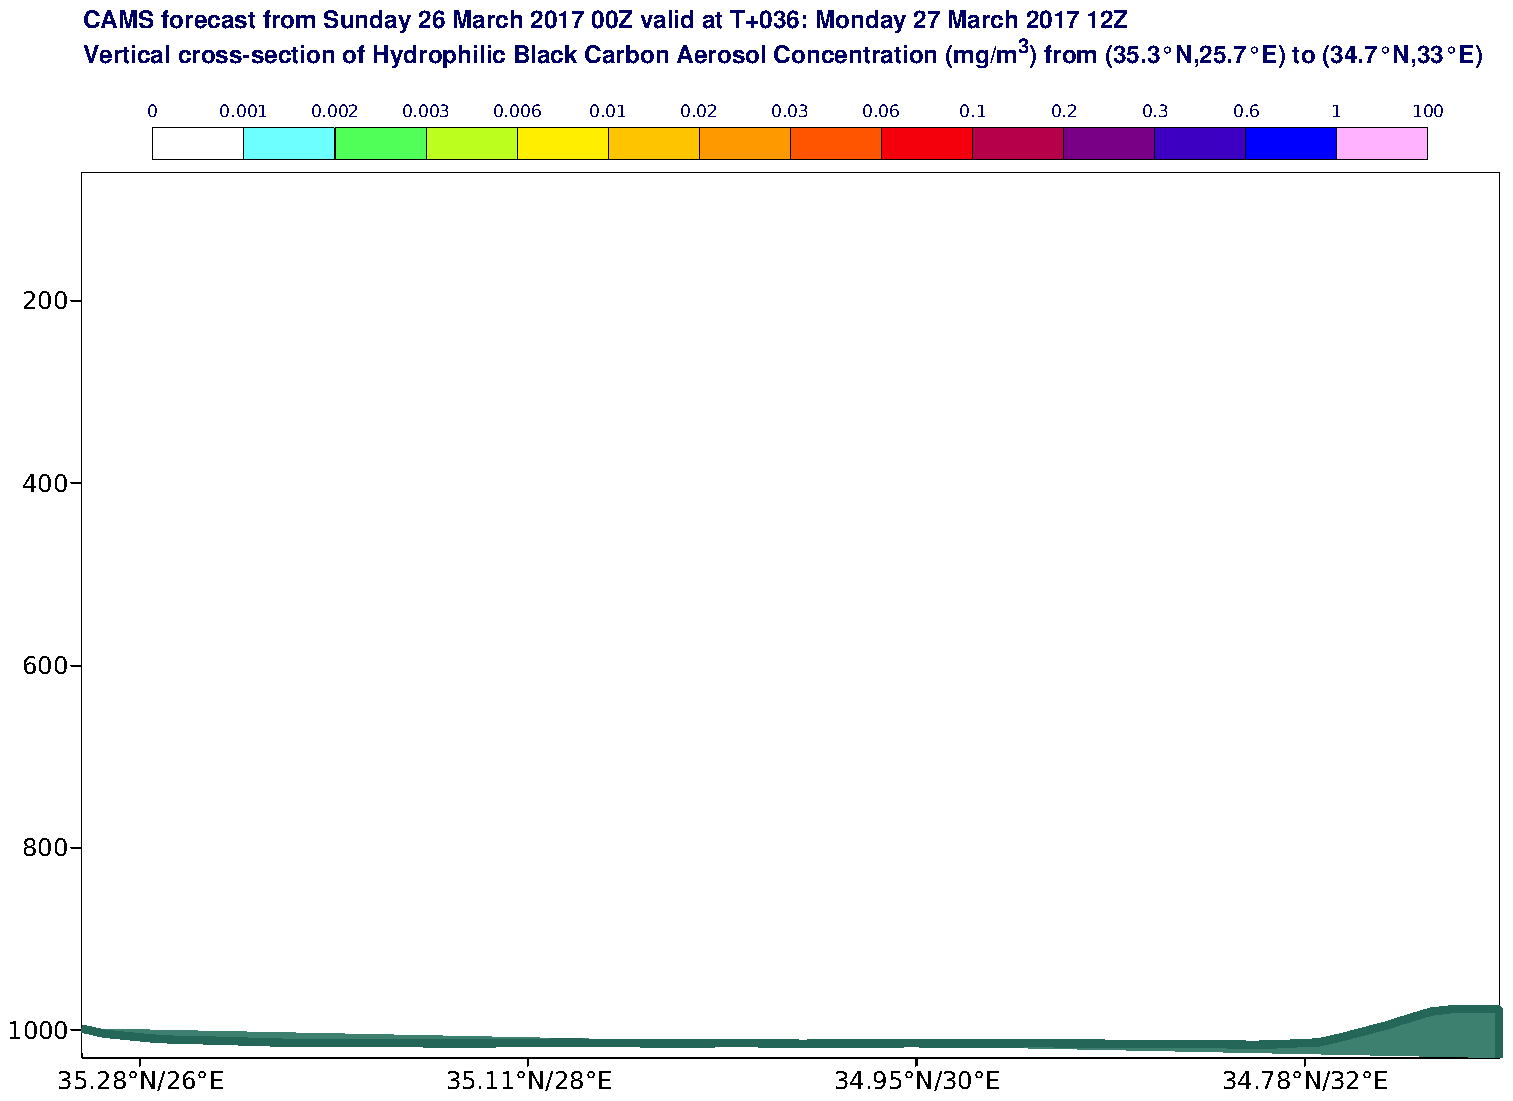 Vertical cross-section of Hydrophilic Black Carbon Aerosol Concentration (mg/m3) valid at T36 - 2017-03-27 12:00